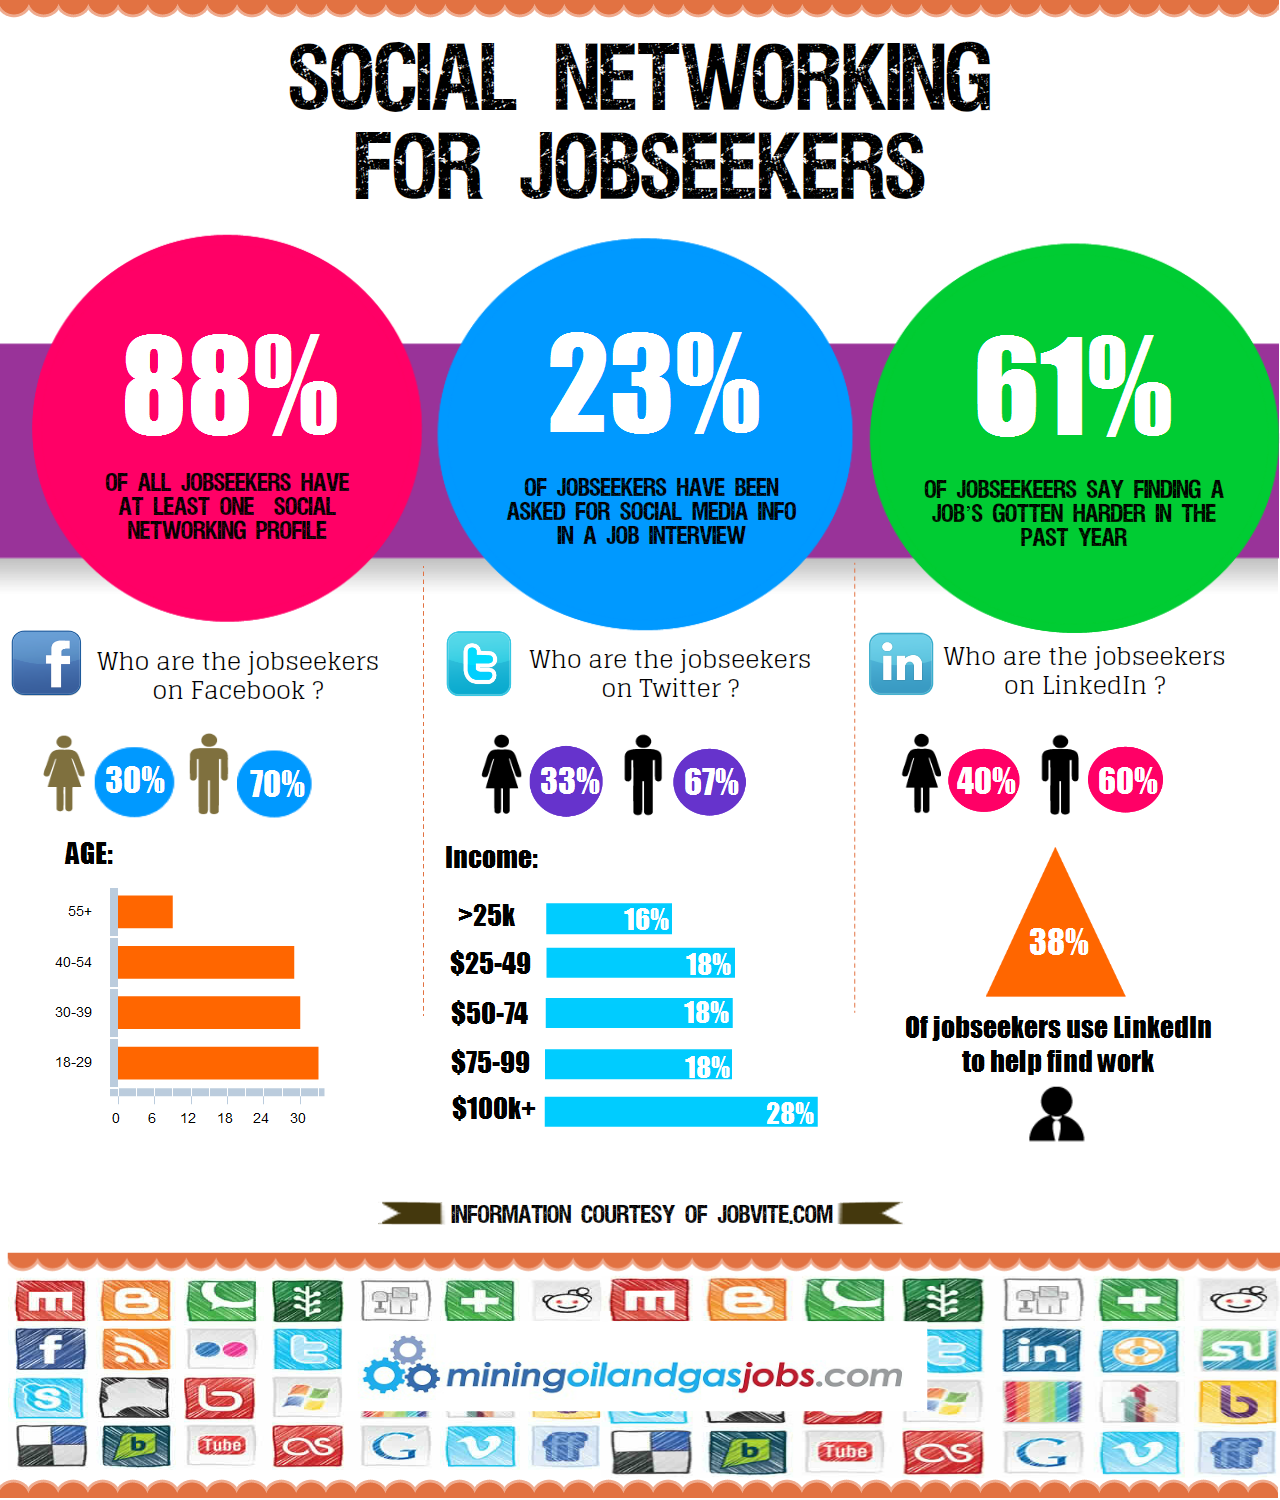 social networking for jobseekers visually